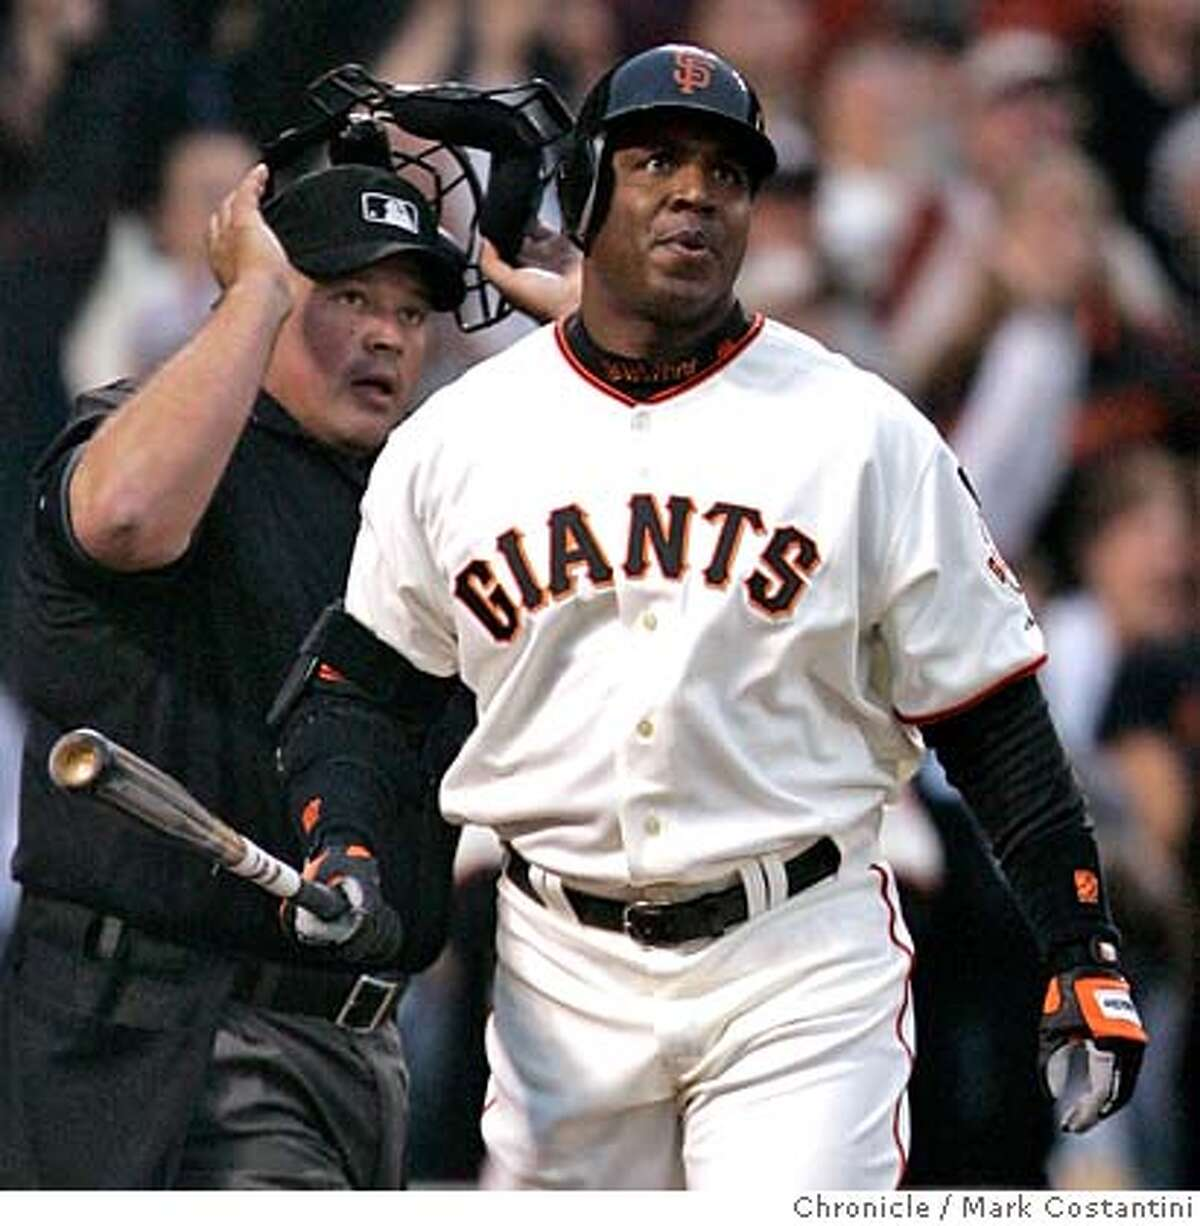 Barry Bonds and Home plate umpire Wally Bell (left)watch the ball fly over the home run fence after Bonds hits home run 757. Giants v. Nationals at ATT Park. Photo: Mark Costantini / S.F. Chronicle